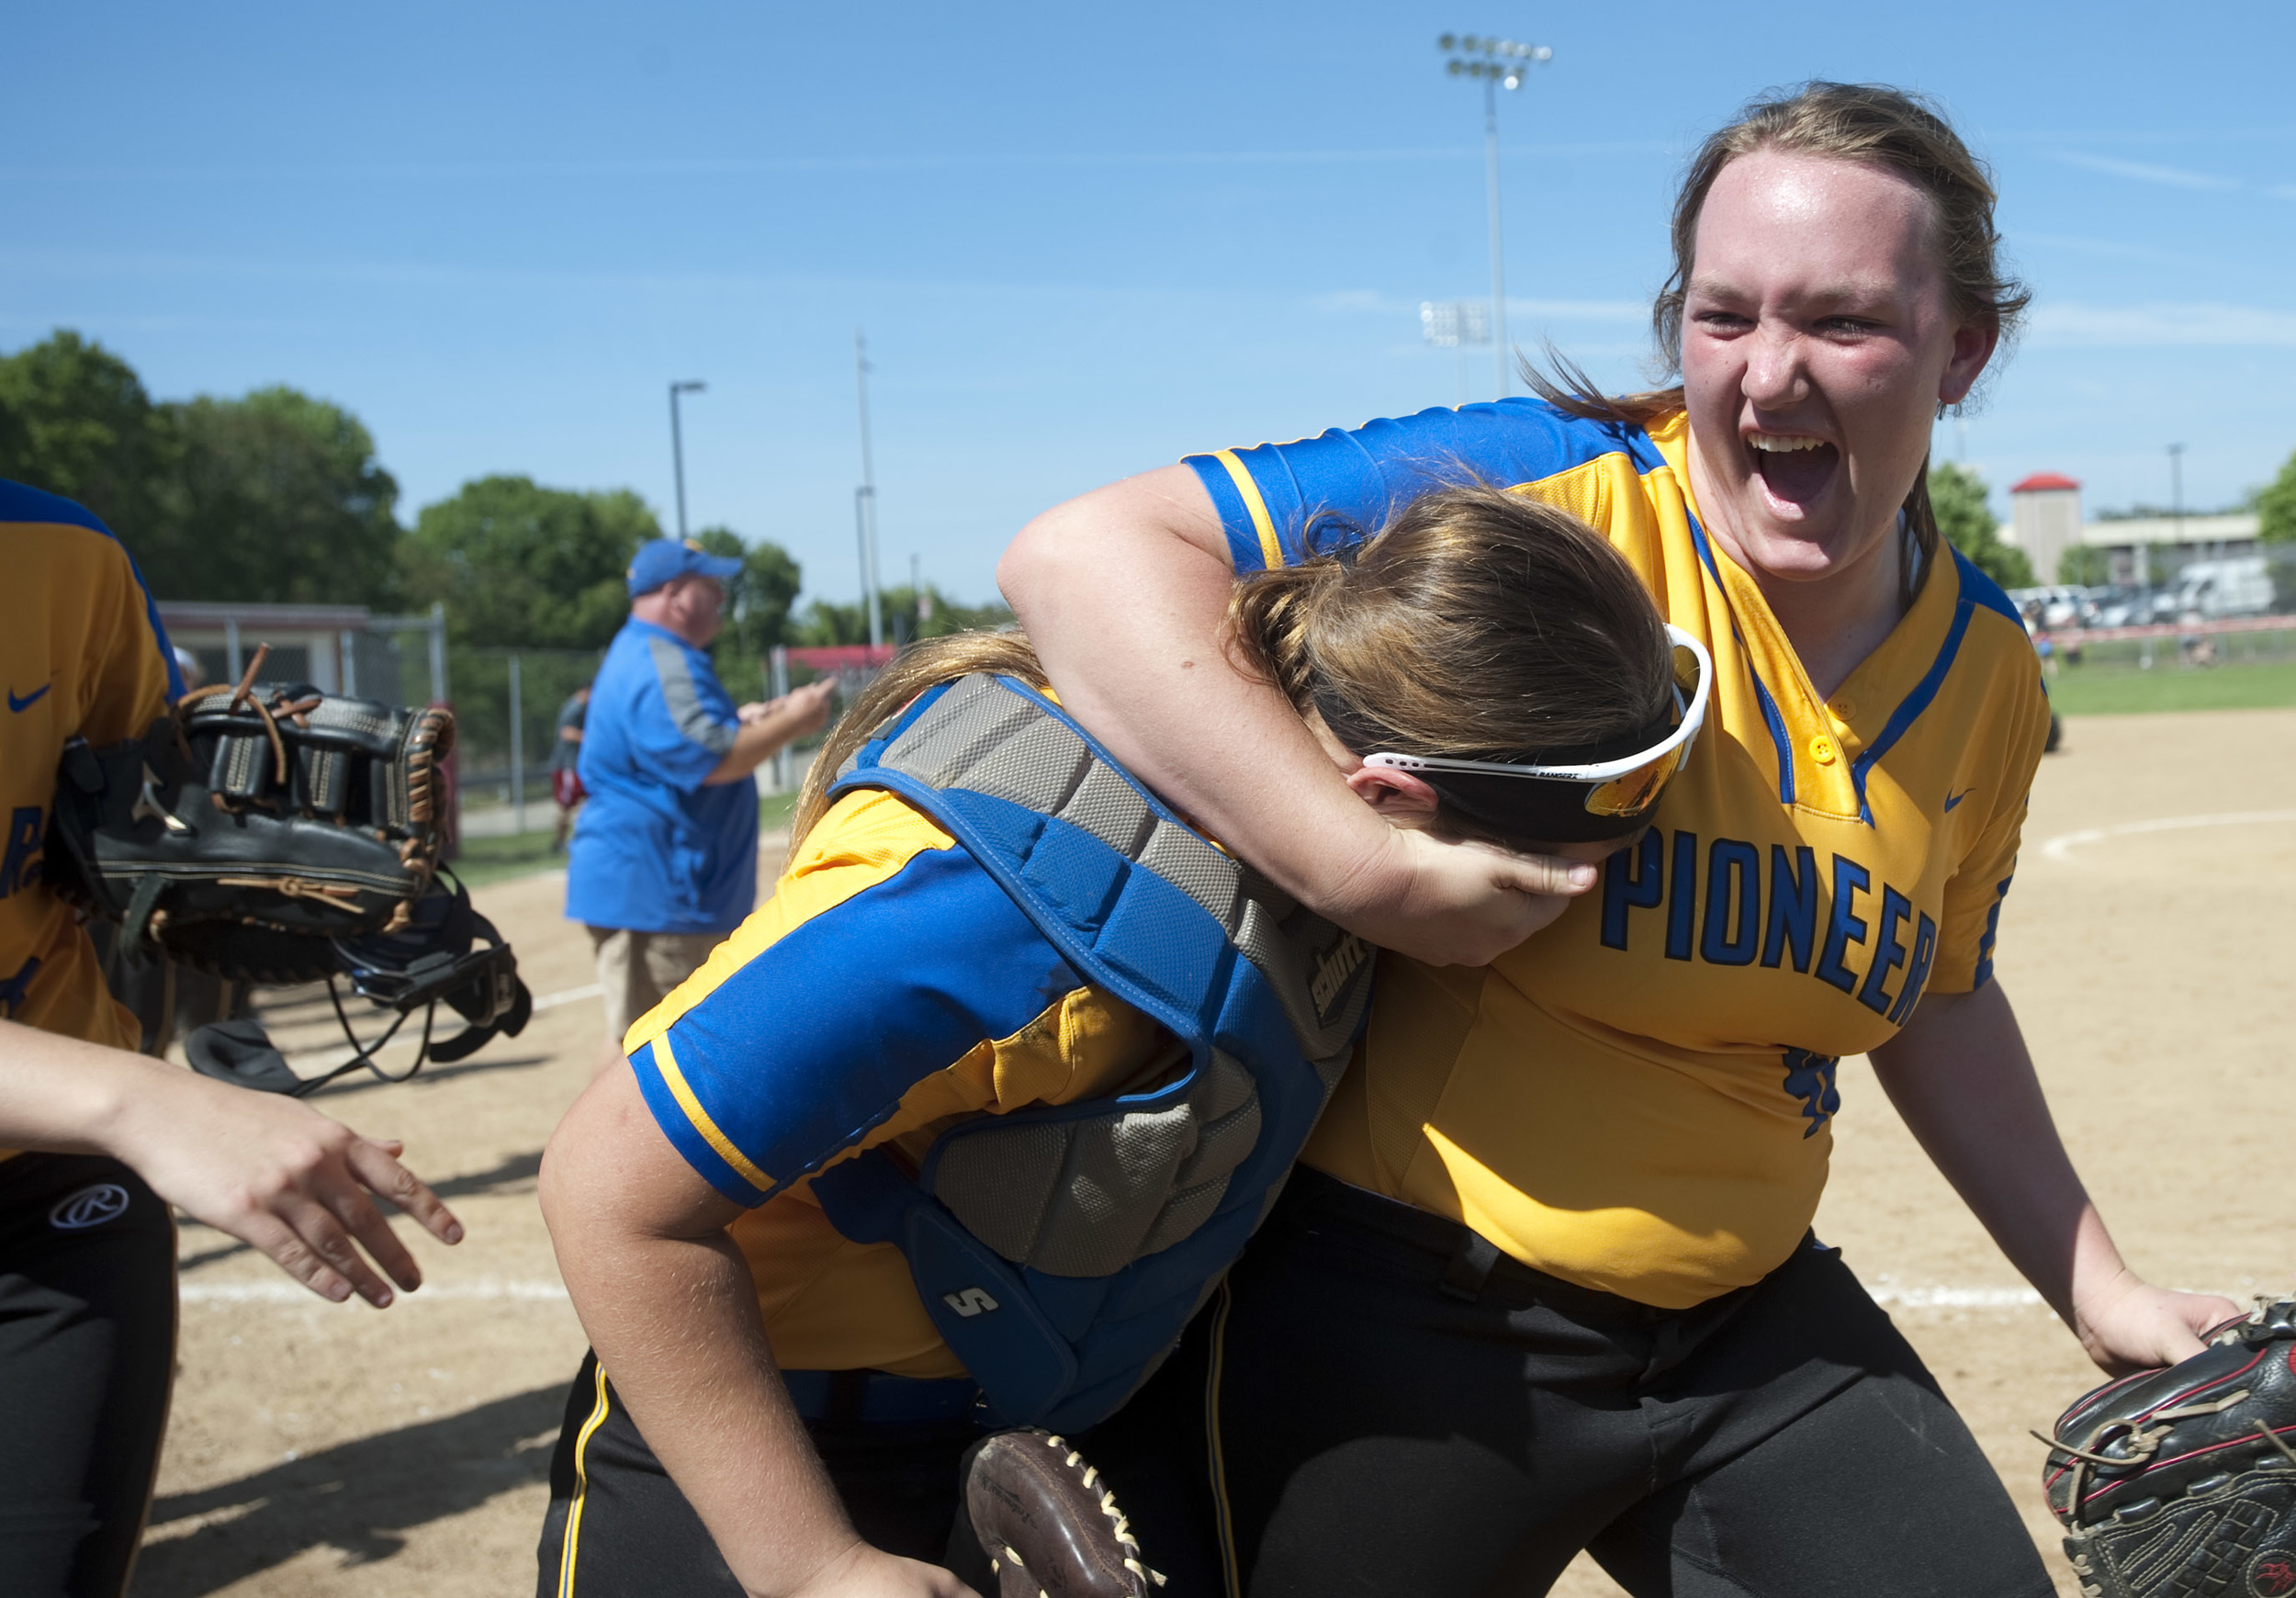 West Greene's Madison Renner puts catcher Shelby Morris in a headlock after beating Monessen during the WPIAL Class A softball semifinal on Wednesday, May 25, 2016 at California University of Pennsylvania. West Greene won 10-0.